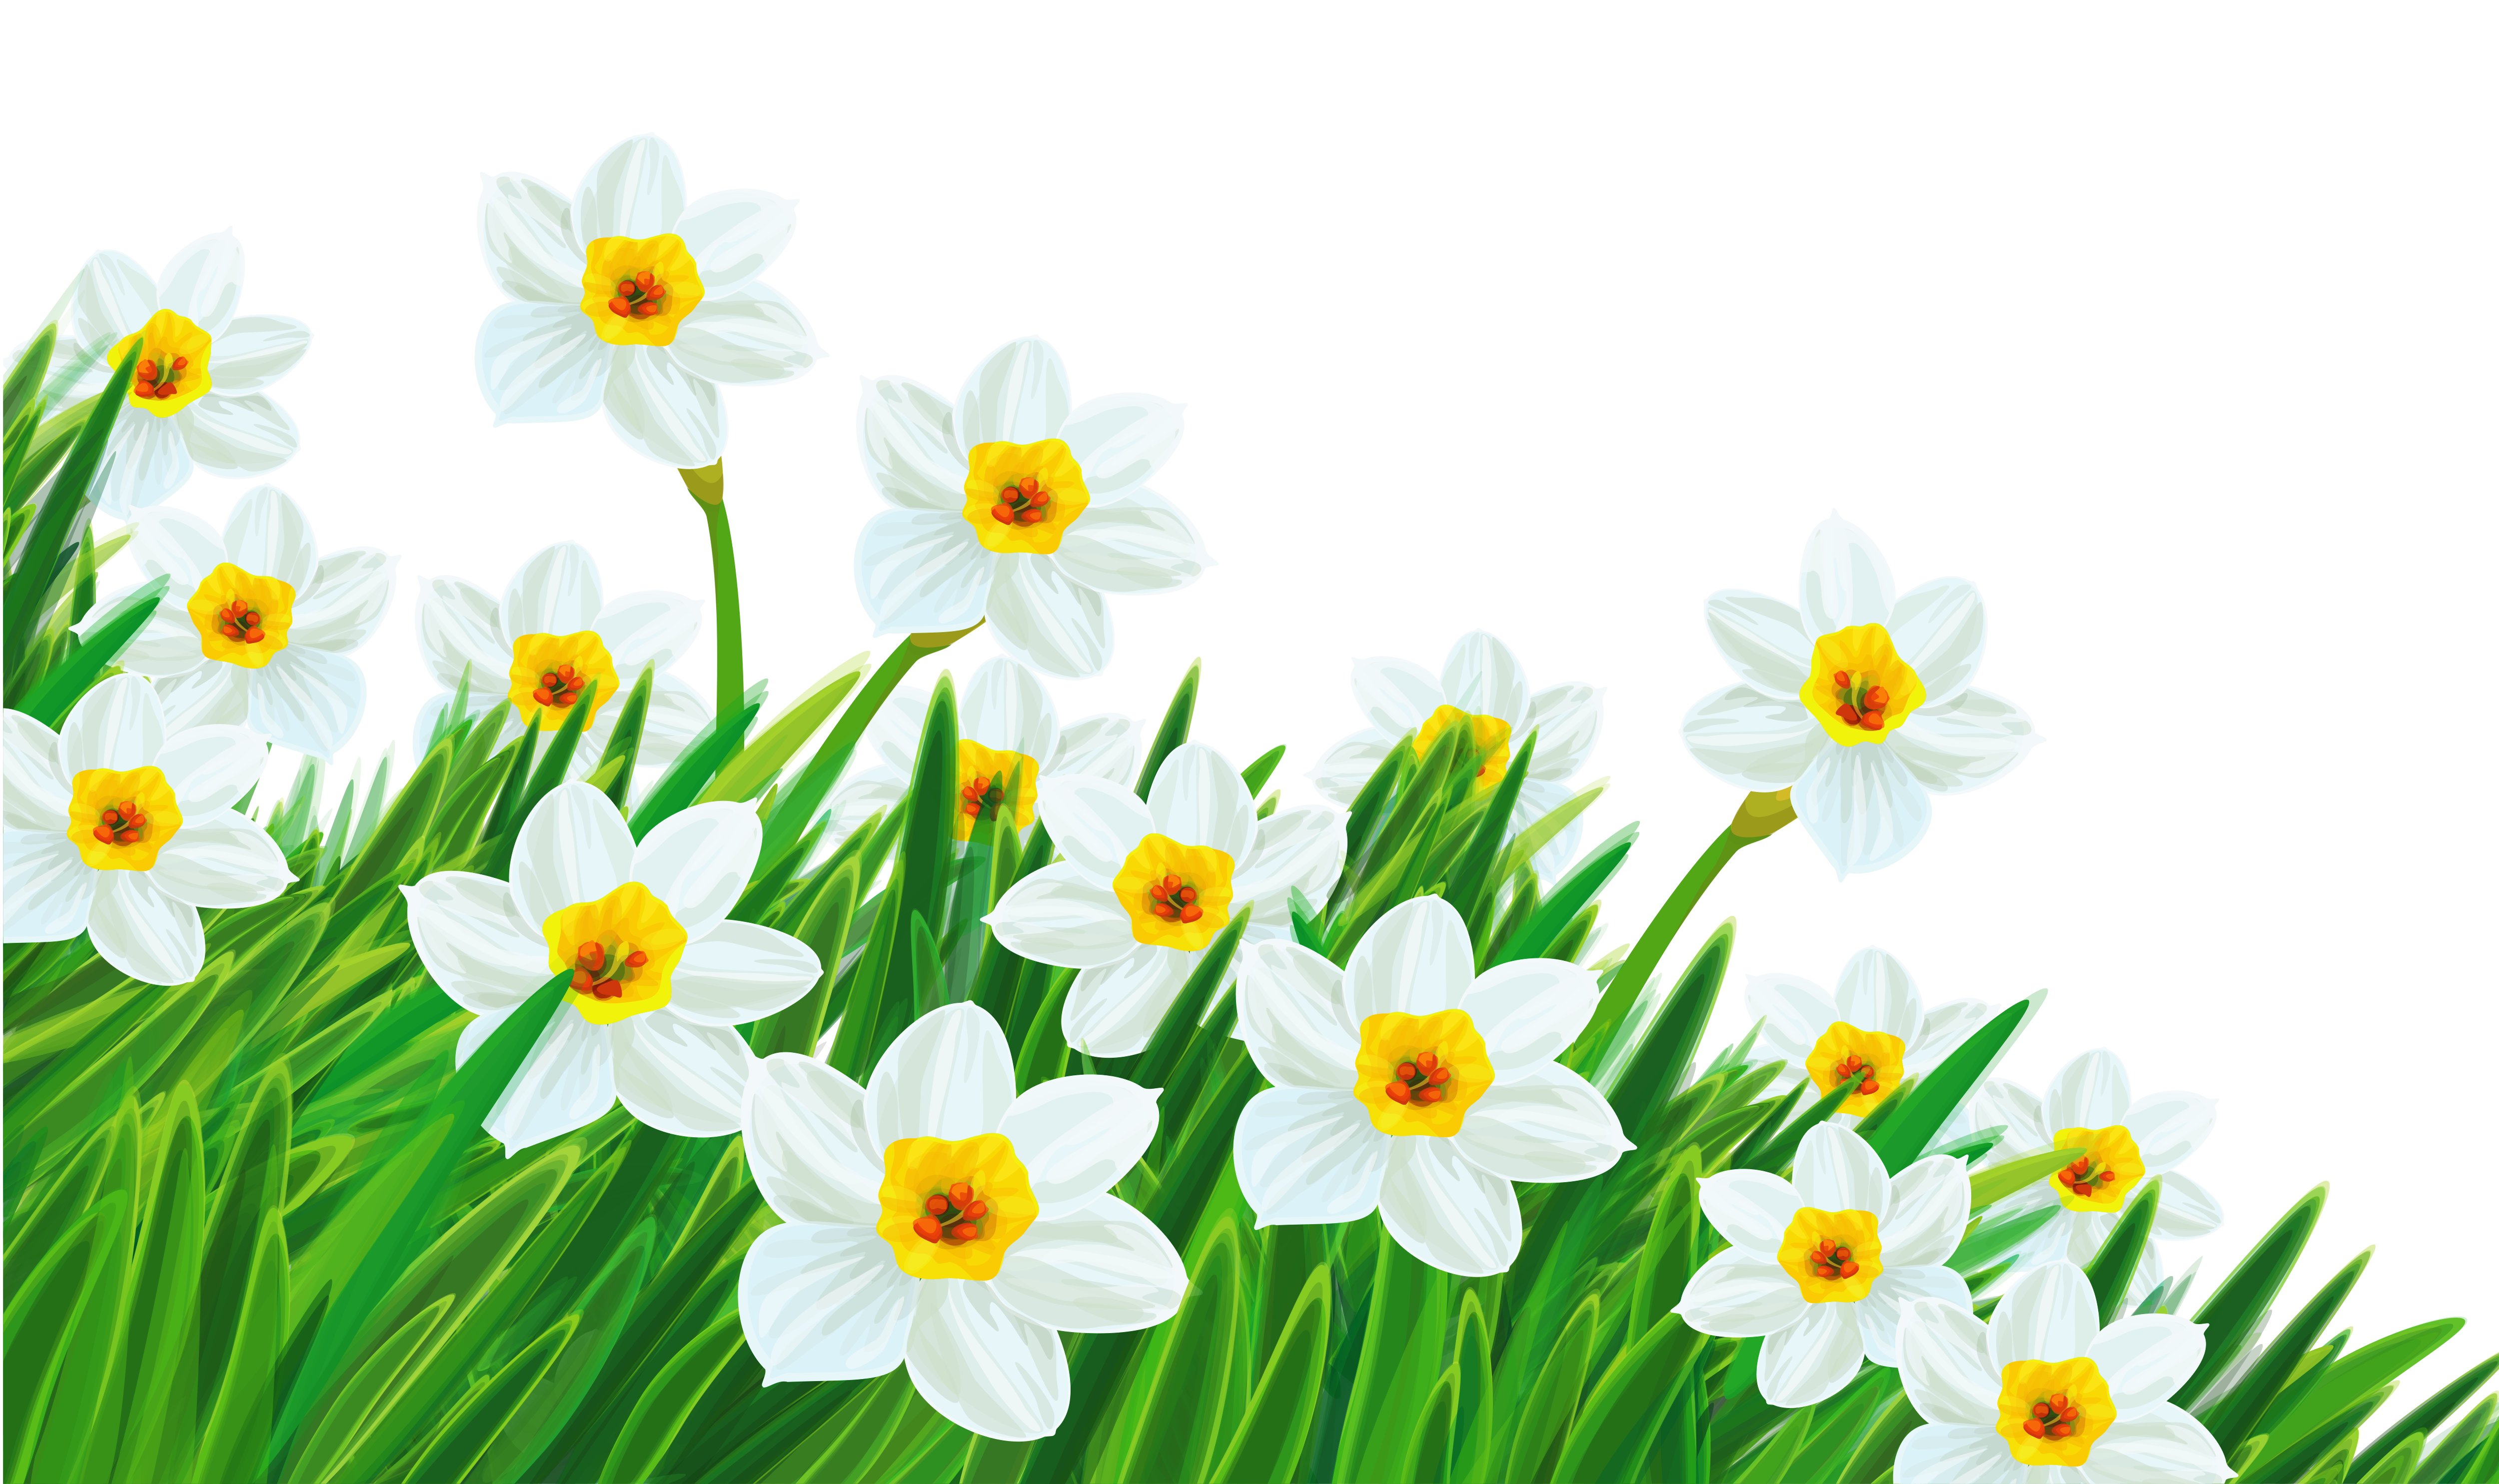 Nature clipart spring. Transparent grass with daffodils